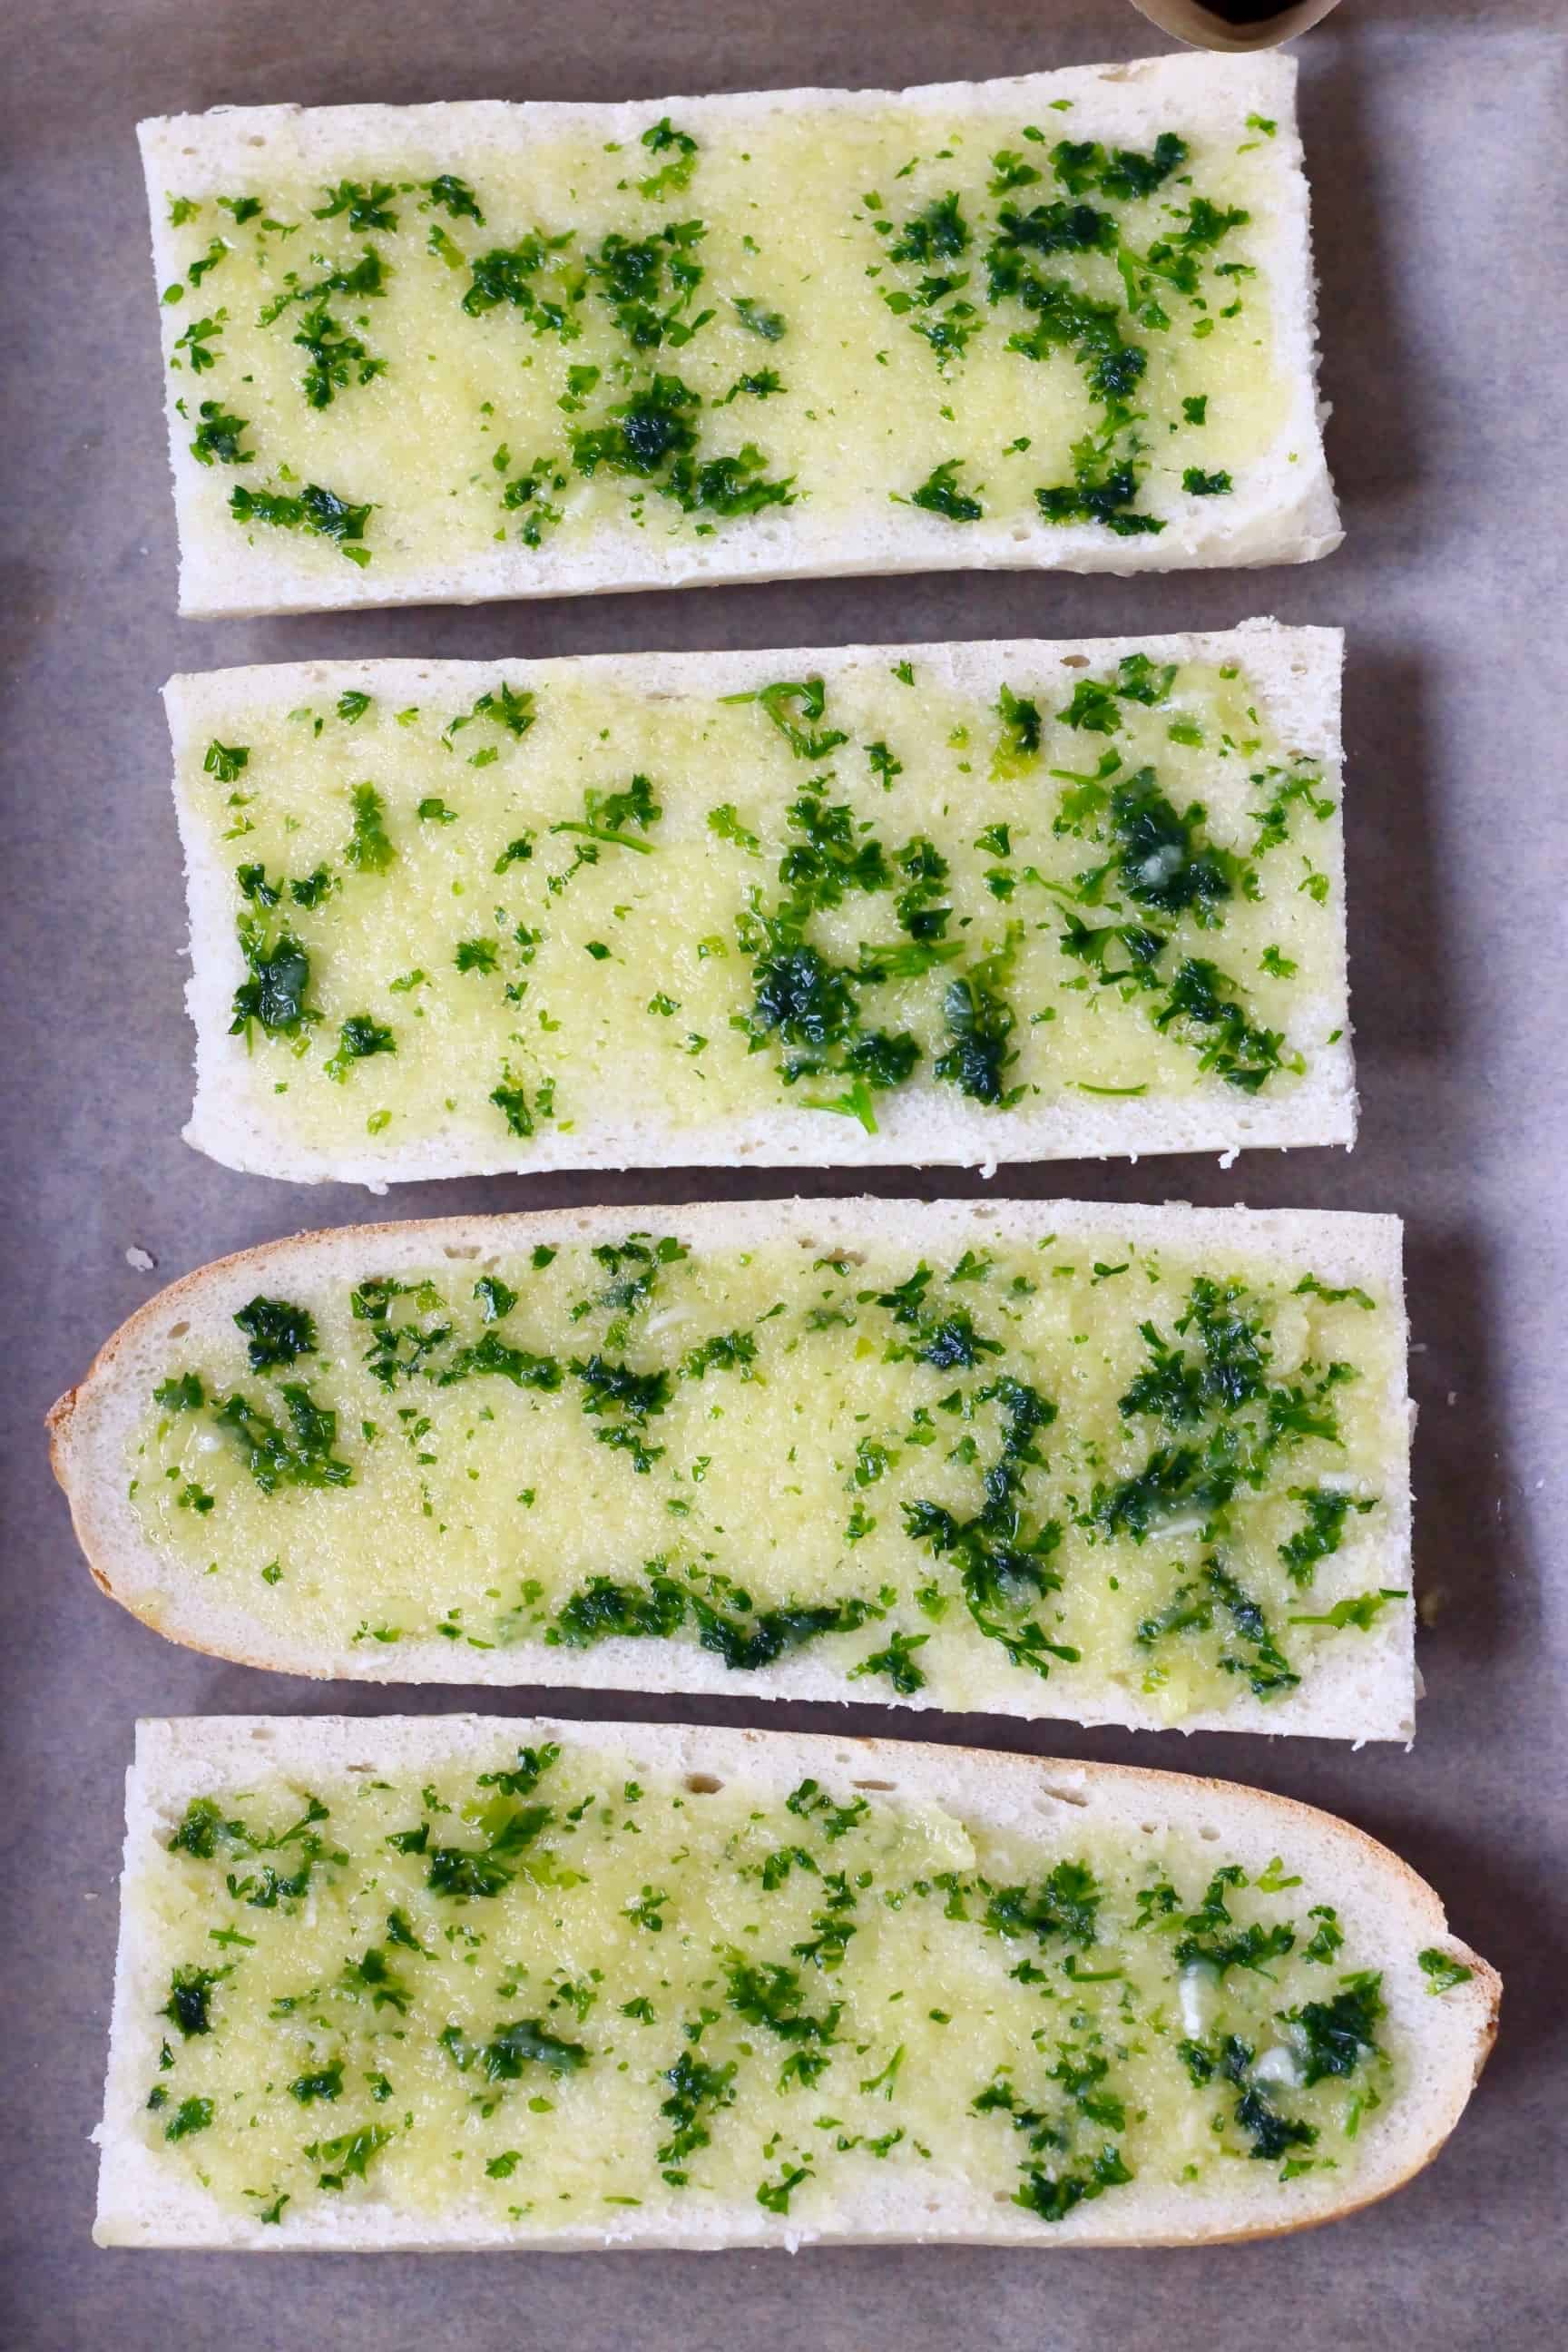 Four pieces of sliced white baguette spread with garlic and herb oil on a sheet of baking paper